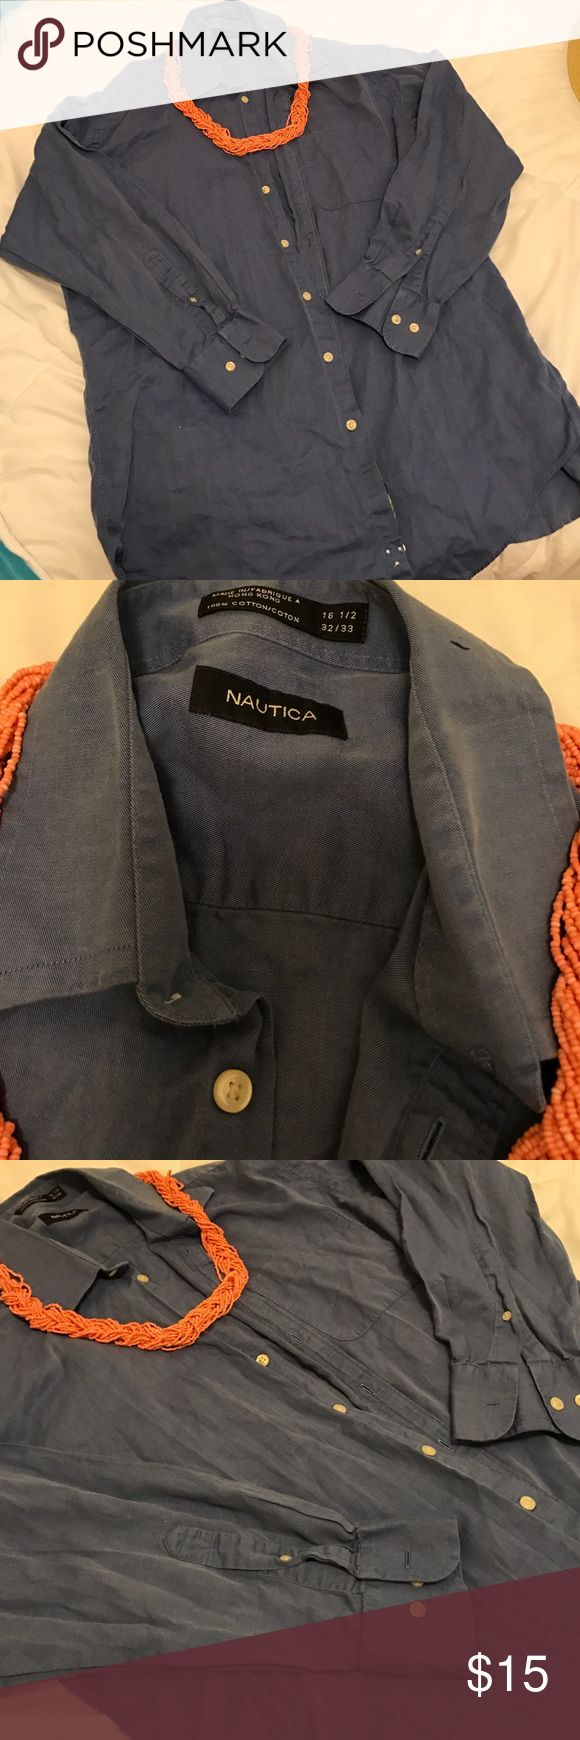 Nautica button down shirt This is a men's shirt, but I wore it with leggings and a chunky necklace. Excellent condition. Size 16 1/2, similar to women's XXL. Nautica Tops Button Down Shirts